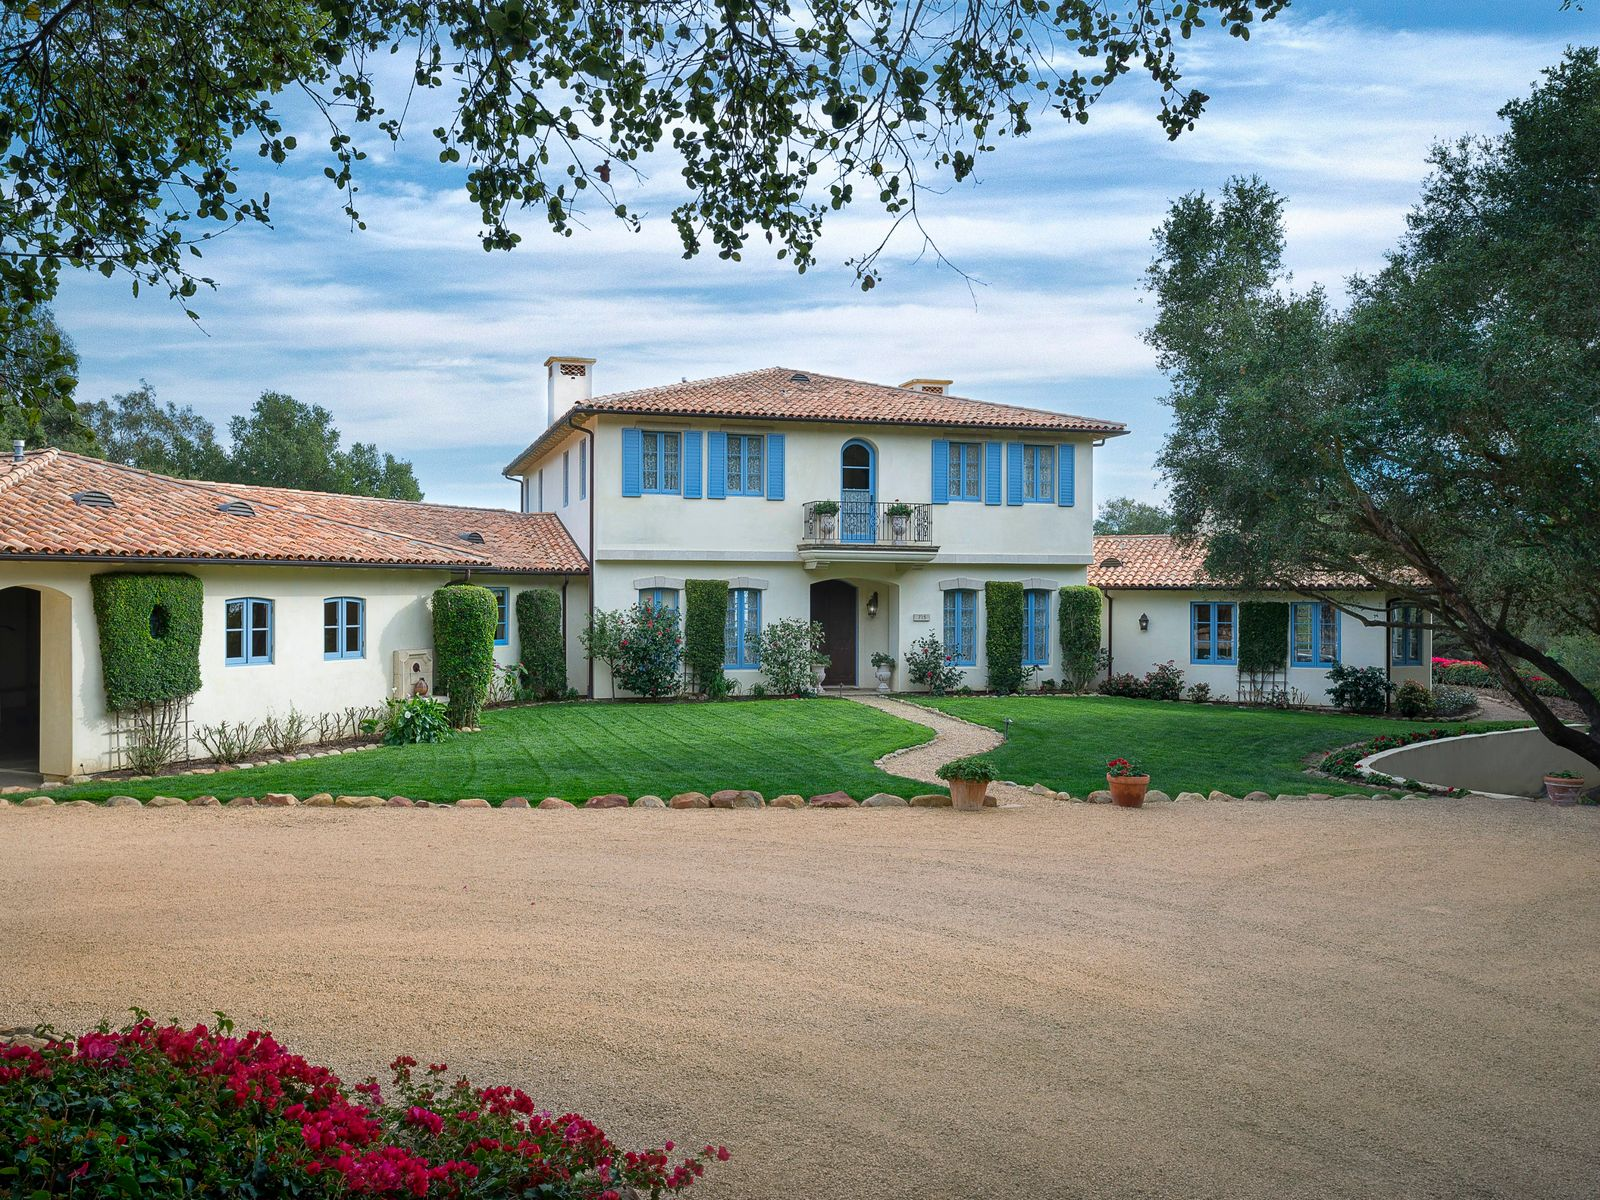 French Mediterranean-Style Estate, Montecito CA Single Family Home - Santa Barbara Real Estate